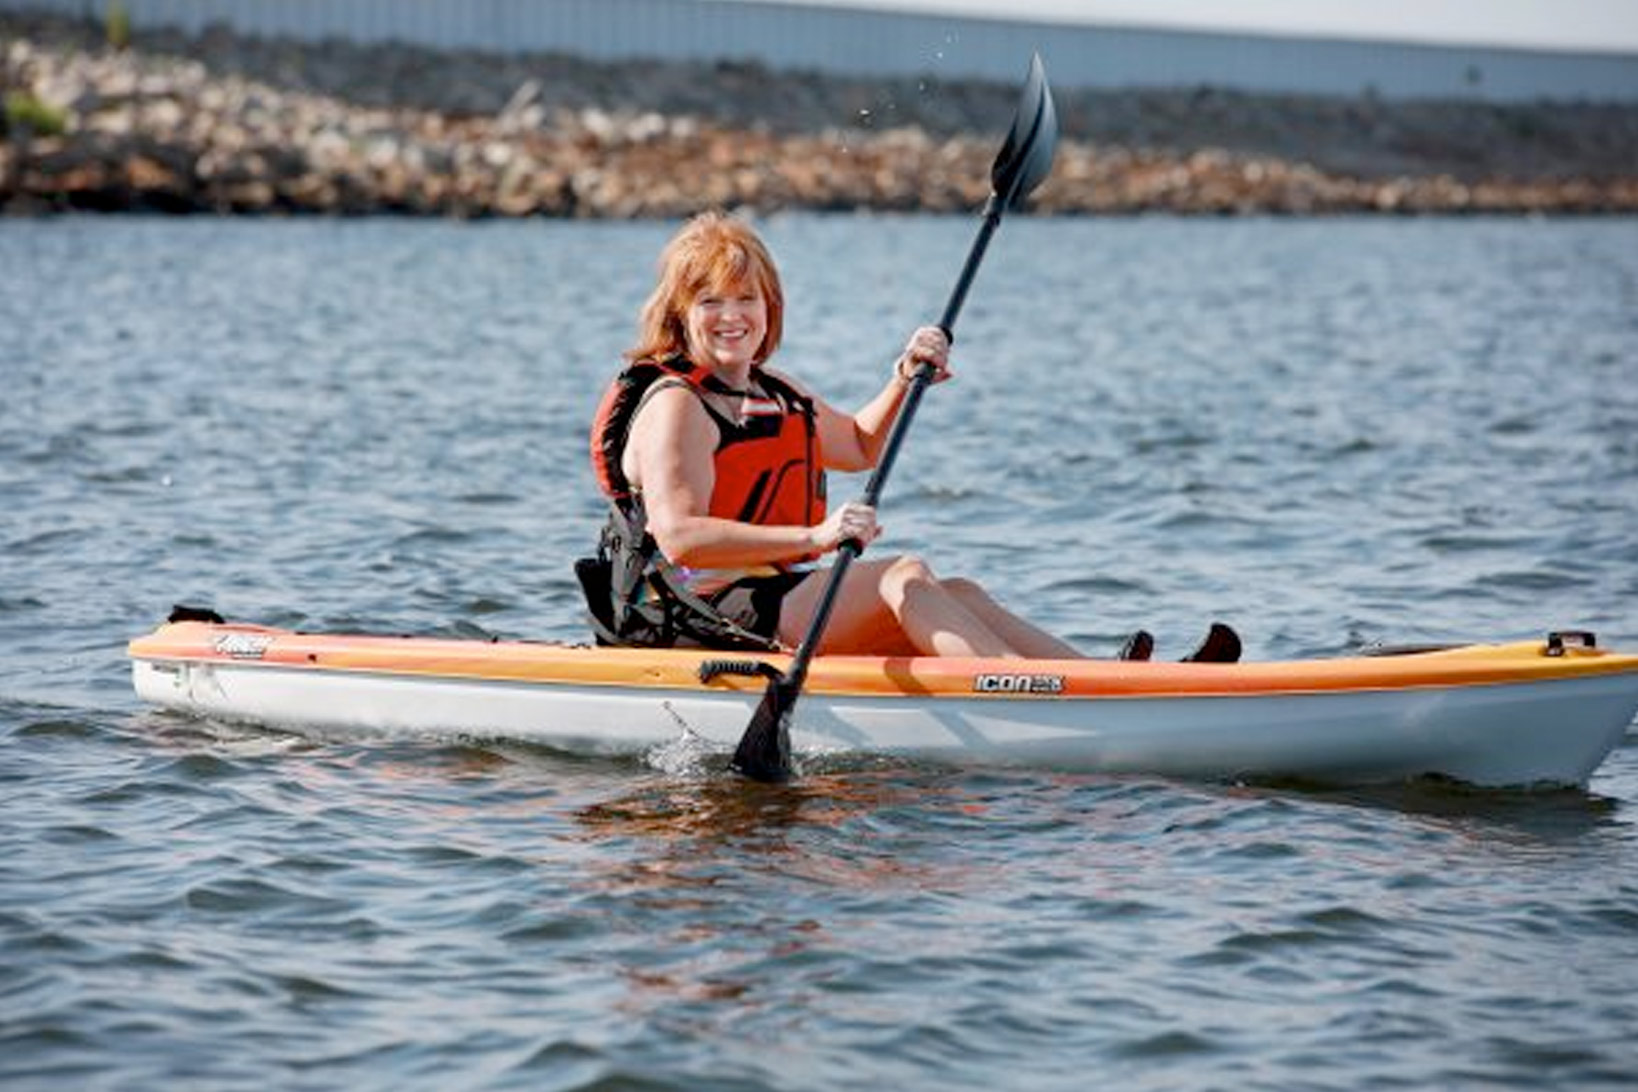 Patient Kate Adkins, kayaking on Lake Murray